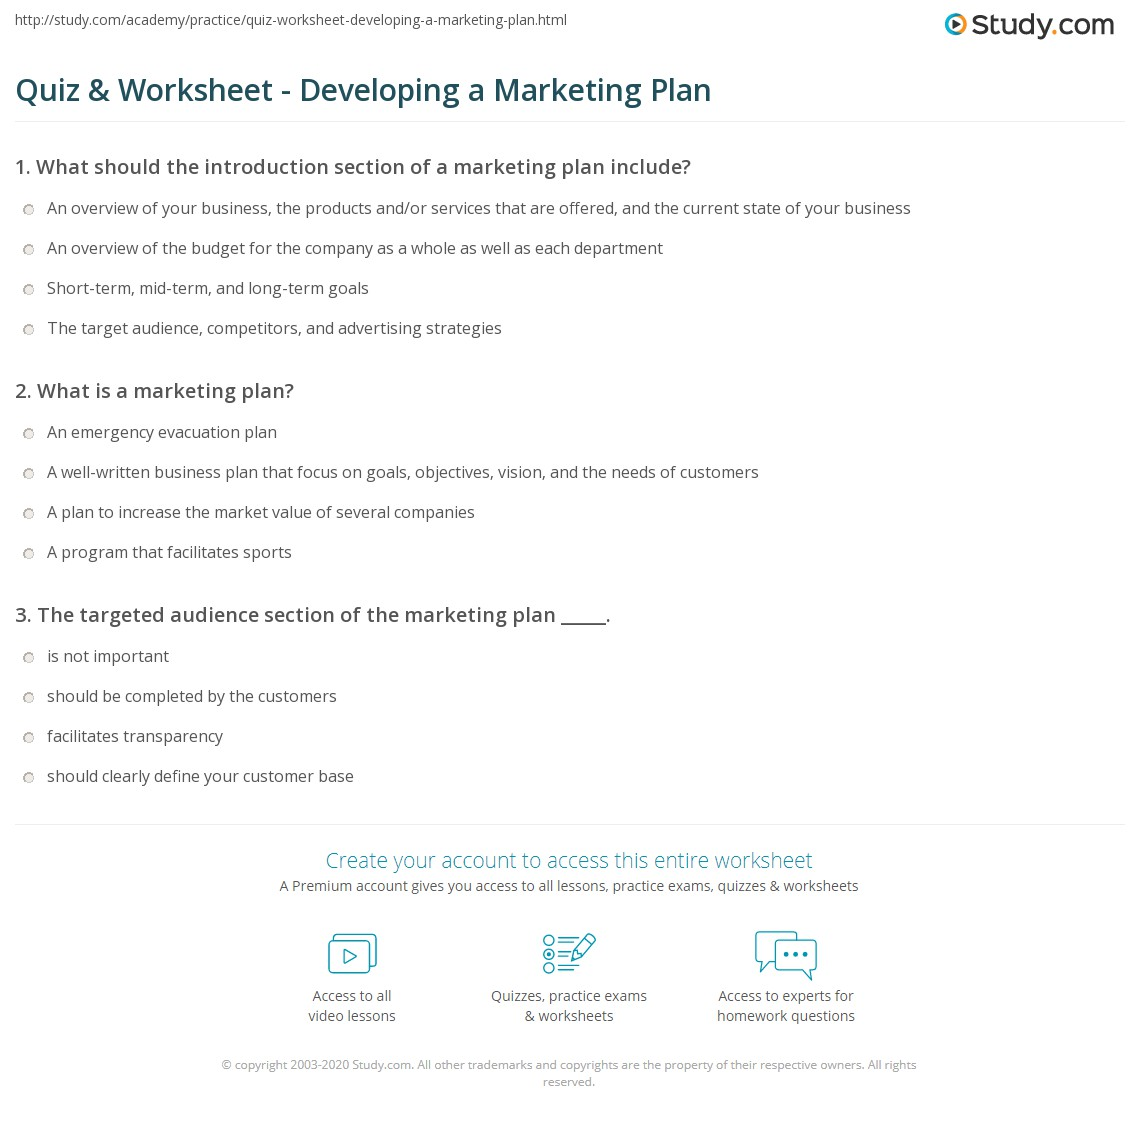 Worksheets Marketing Plan Worksheet quiz worksheet developing a marketing plan study com print how to write worksheet